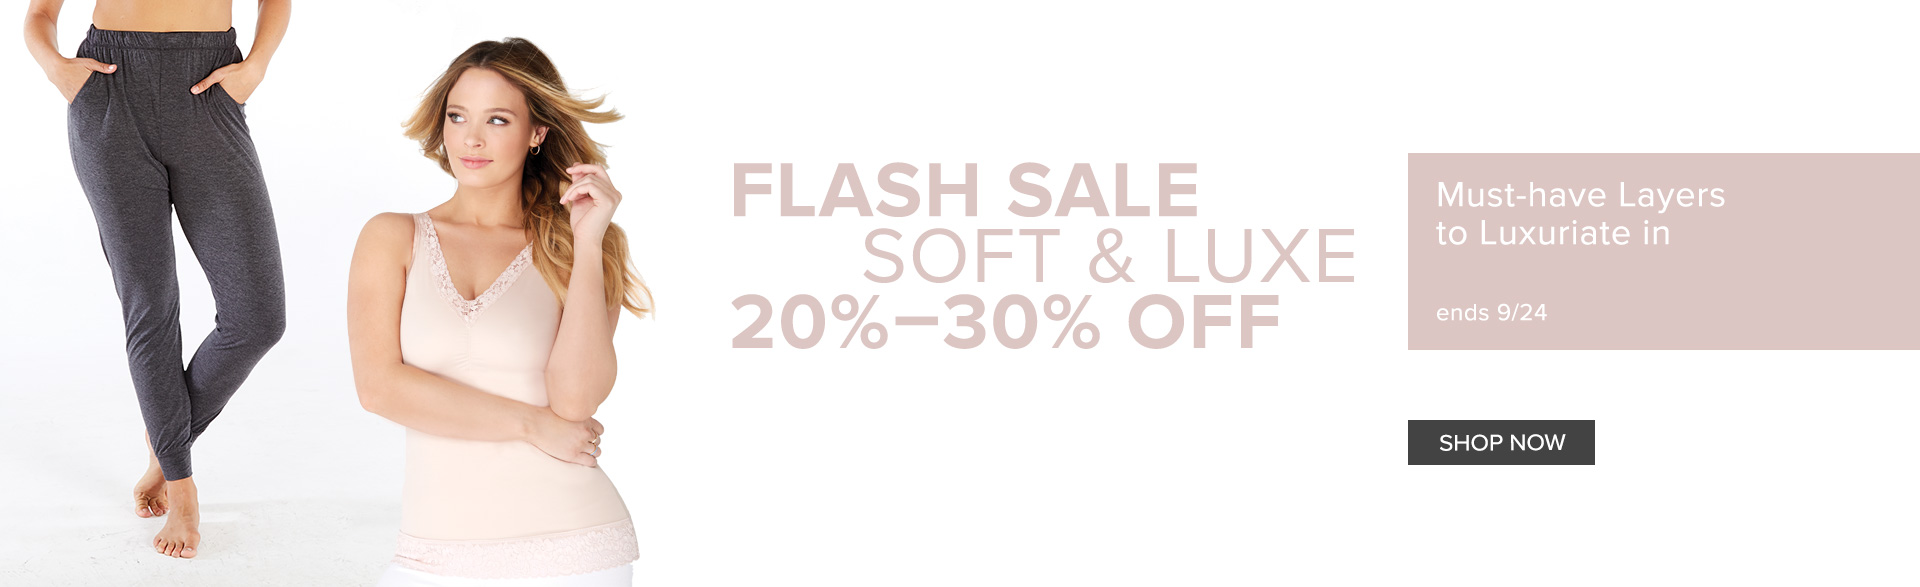 Flash Sale Soft & Luxe 20% - 30% Off